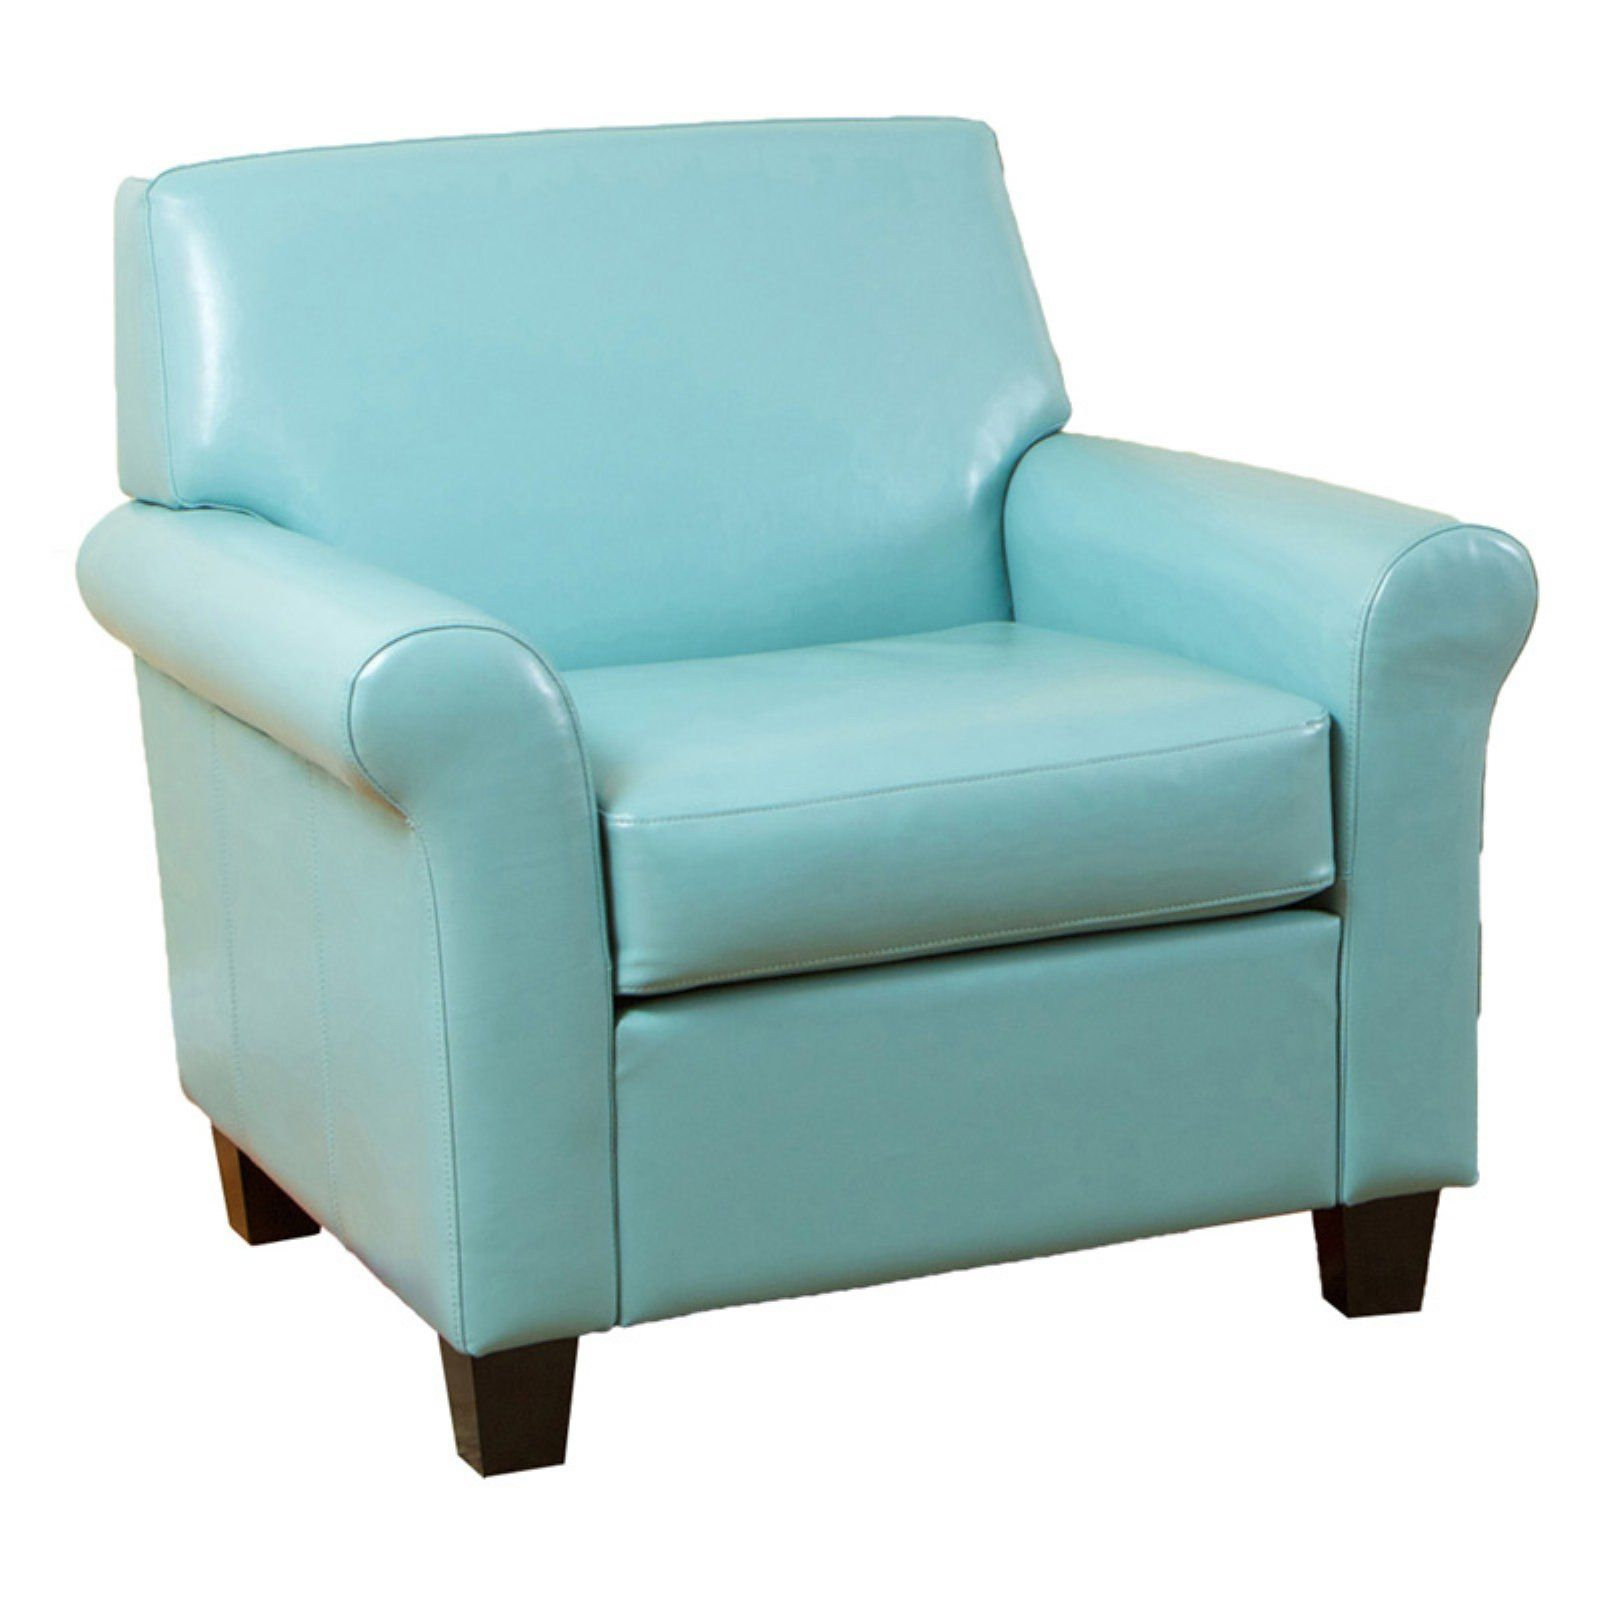 Teal Blue Modern Club Chair In 2020 Leather Club Chairs Club